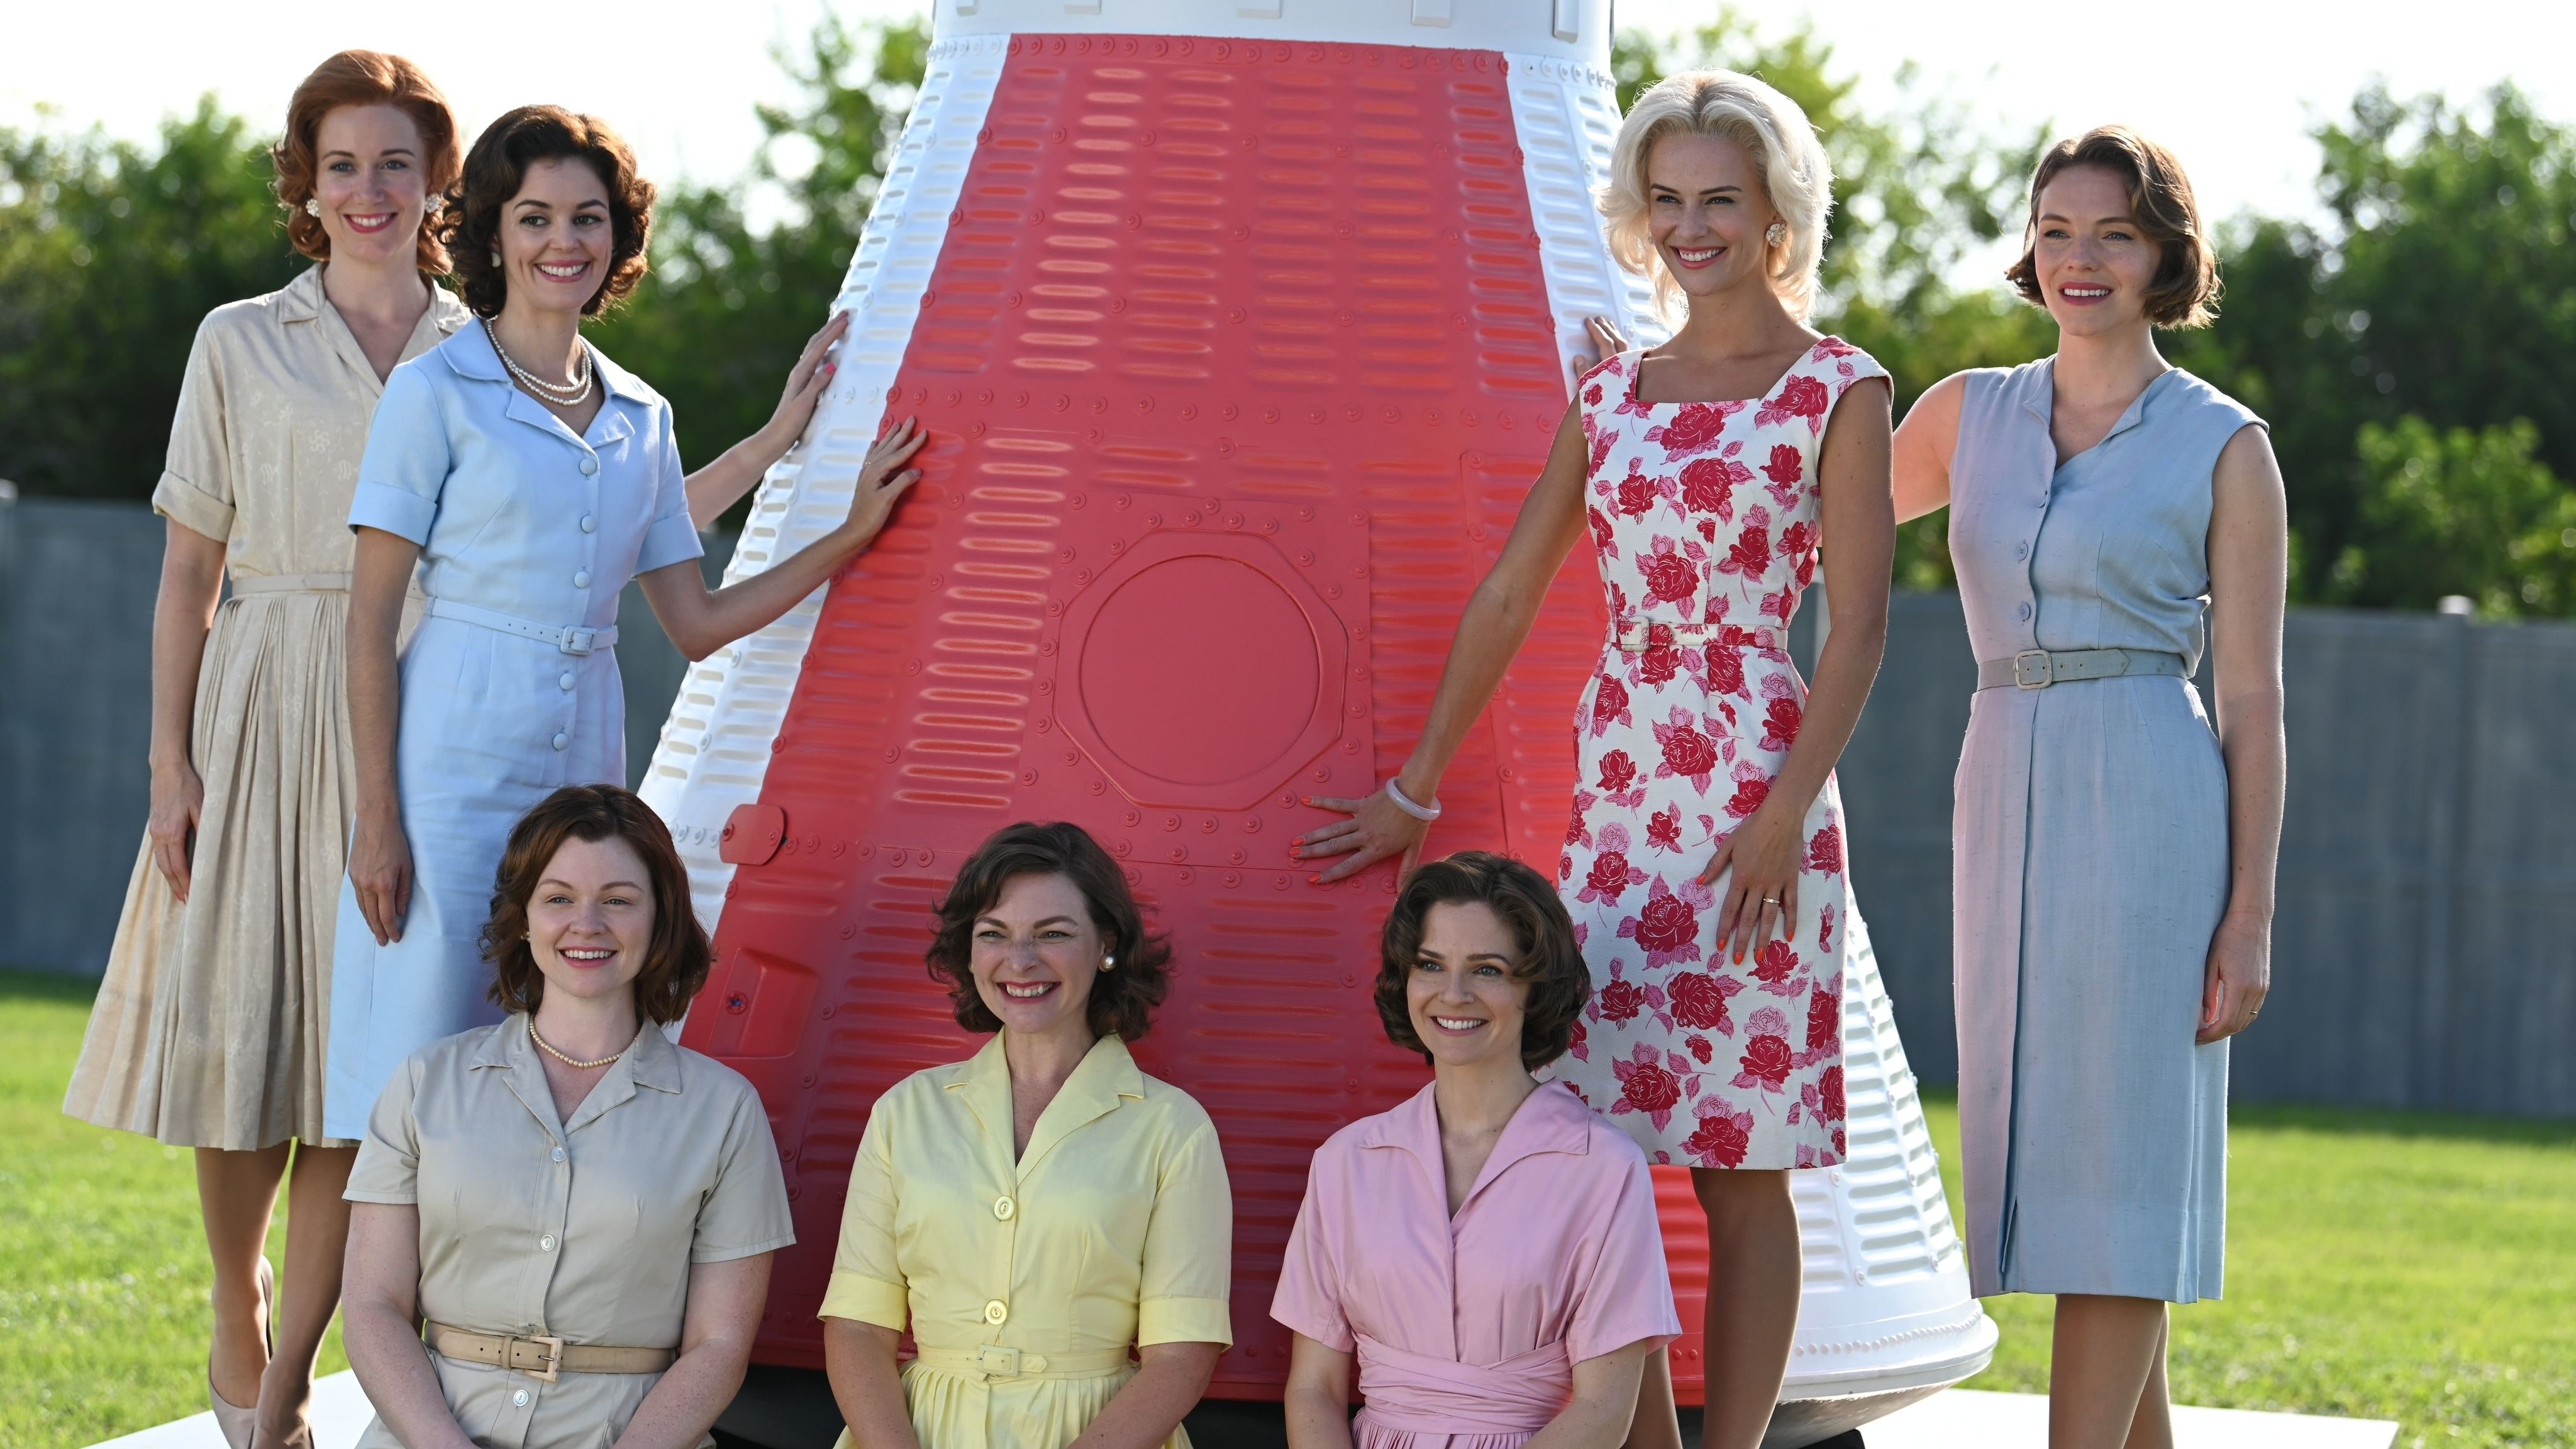 L to R: Laura Ault as Jo Schirra, Nora Zehetner as Annie Glenn, Victoria White as Marge Slayton, Rachel Buttram as Betty Grissom, Shannon Lucio as Louise Shepard, Jade Albany Pietrantonio as Rene Carpenter and Eloise Mumford as Trudy Cooper pose for LIFE Magazine group photo in National Geographic's THE RIGHT STUFF streaming on Disney+. (National Geographic/Gene Page)